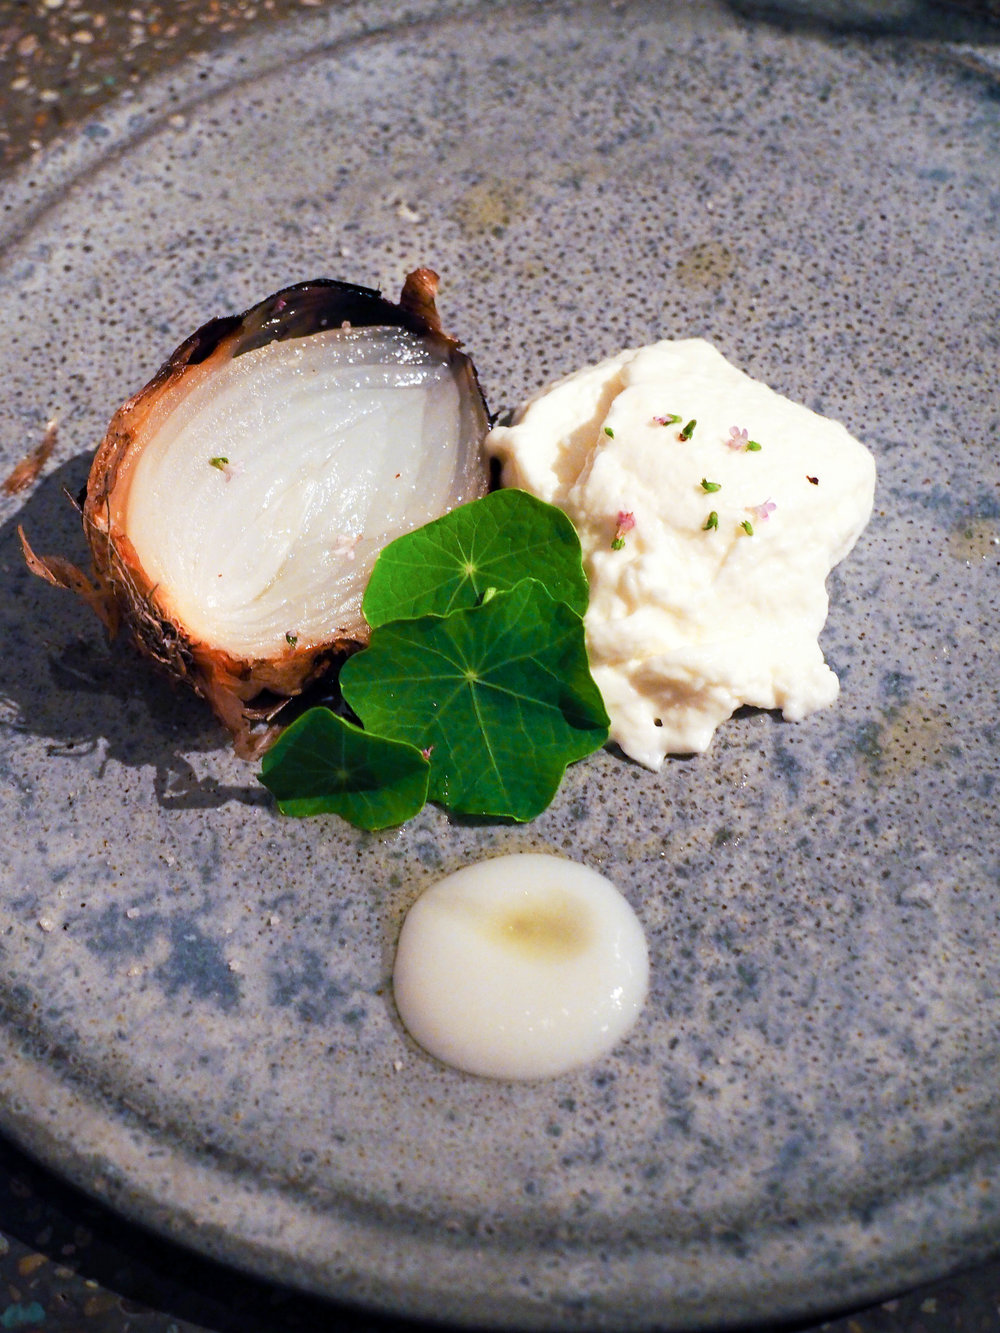 The creamiest oven charred onion served with a cream mousse